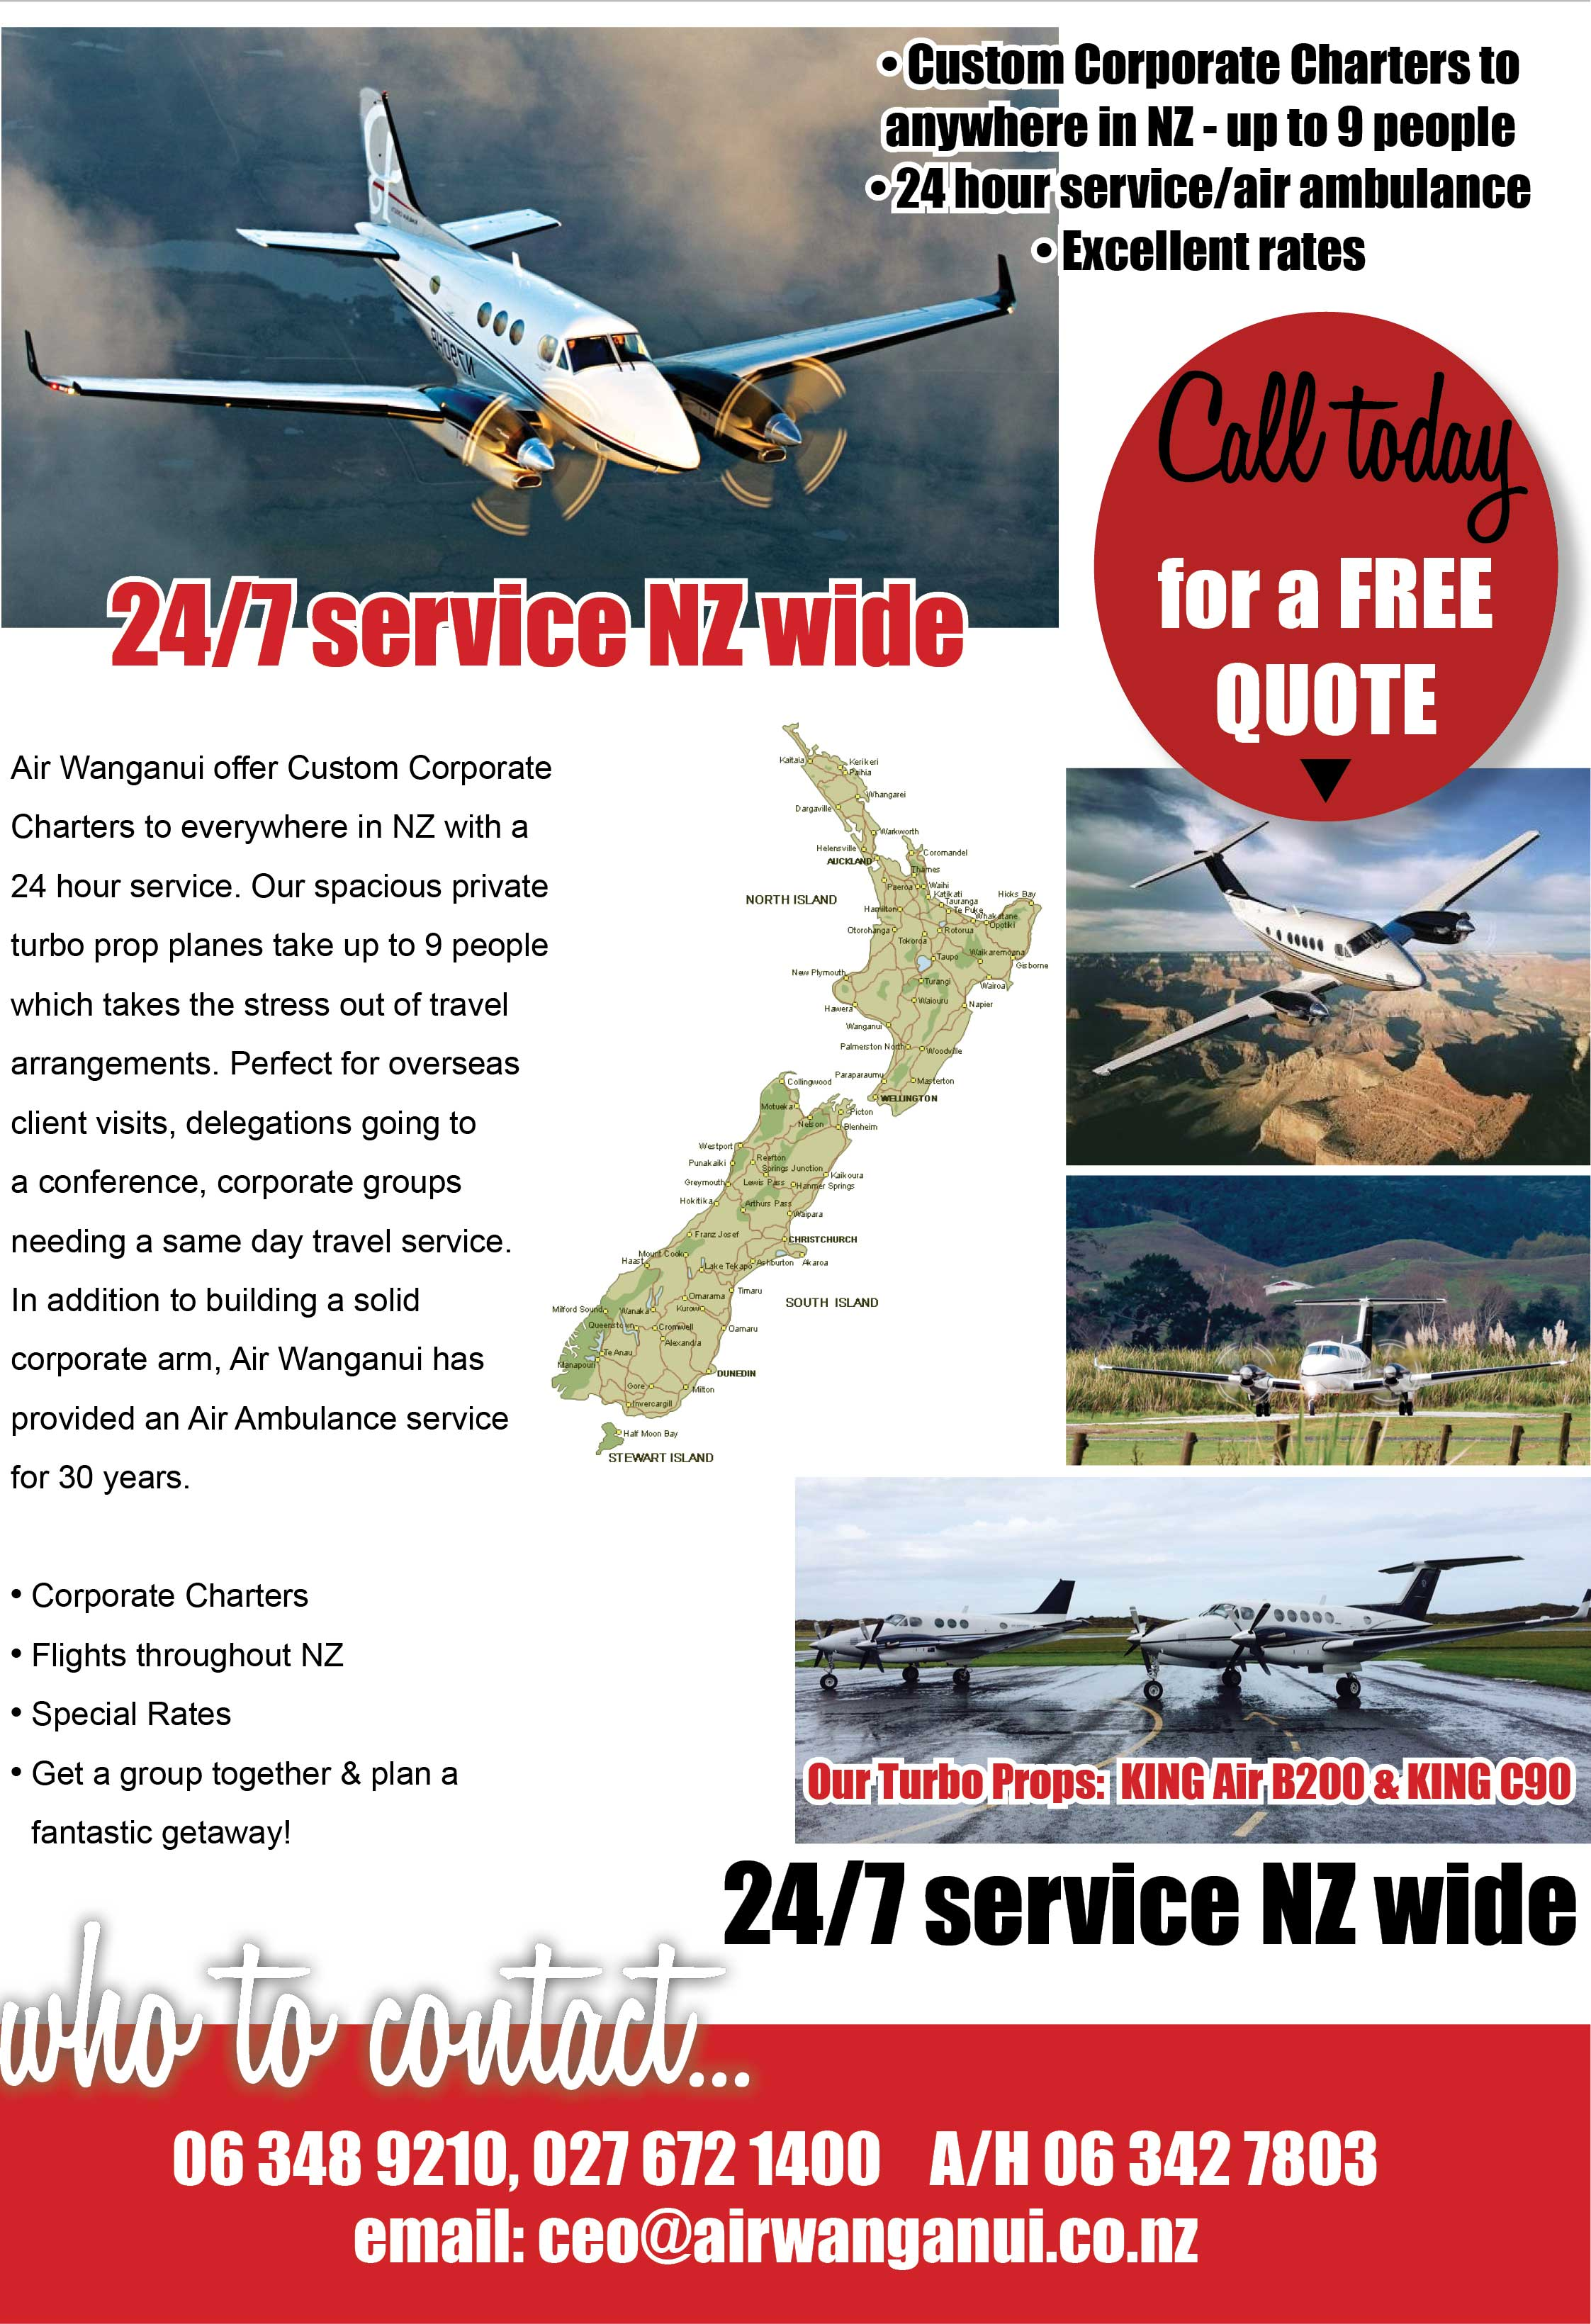 Air Wanganui. Wanganui charter planes. Custom Corporate Charters to anywhere in NZ - up to 9 people. 24 hour service/air ambulance. Excellent rates.